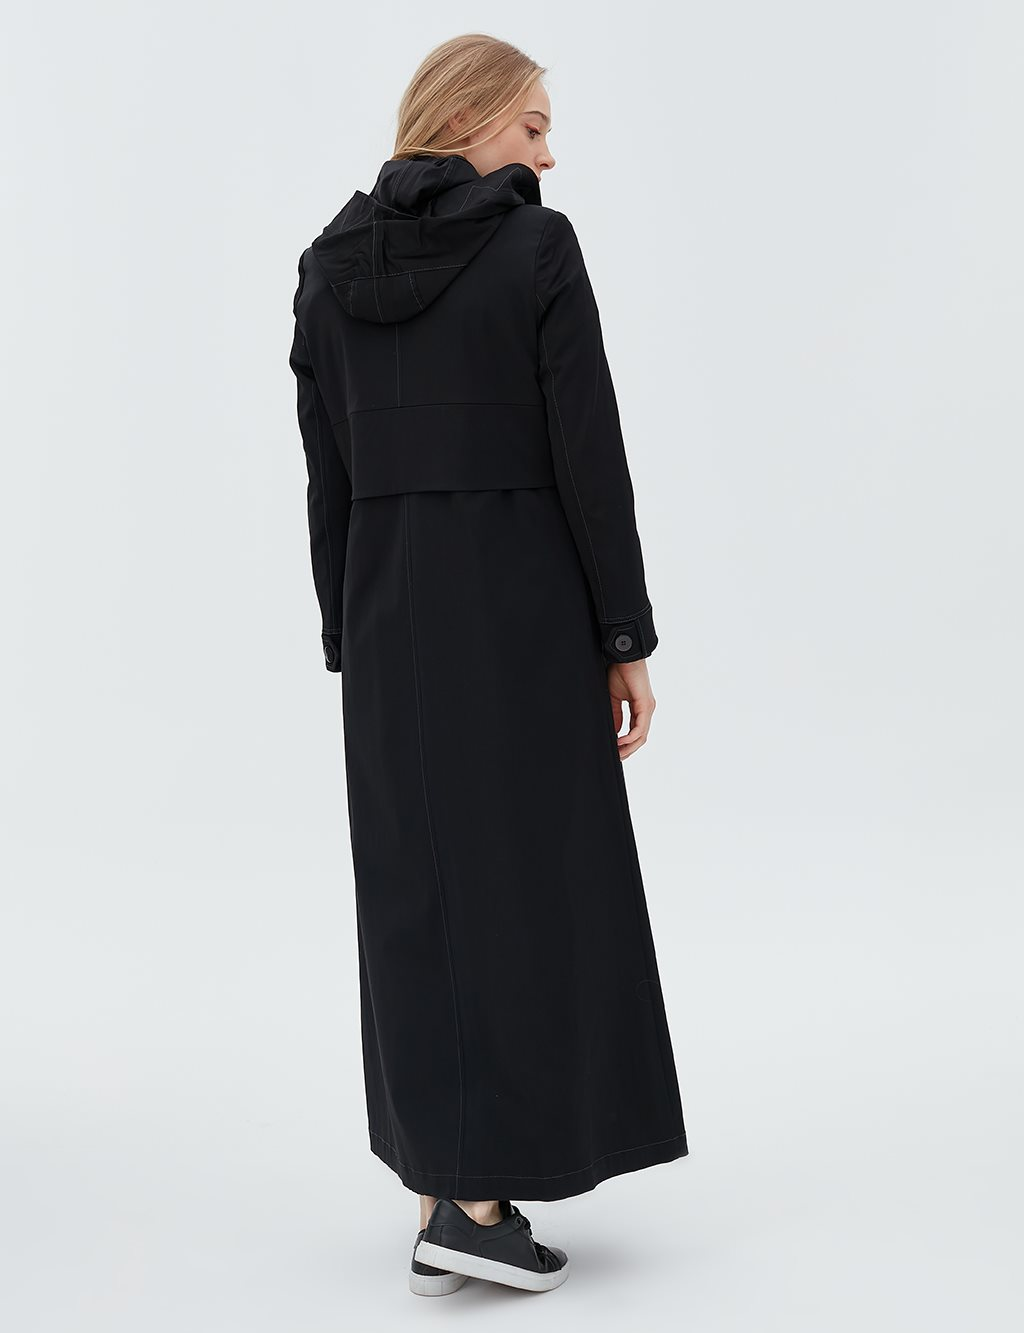 Detailed Overcoat With Hood B20 15014 Black